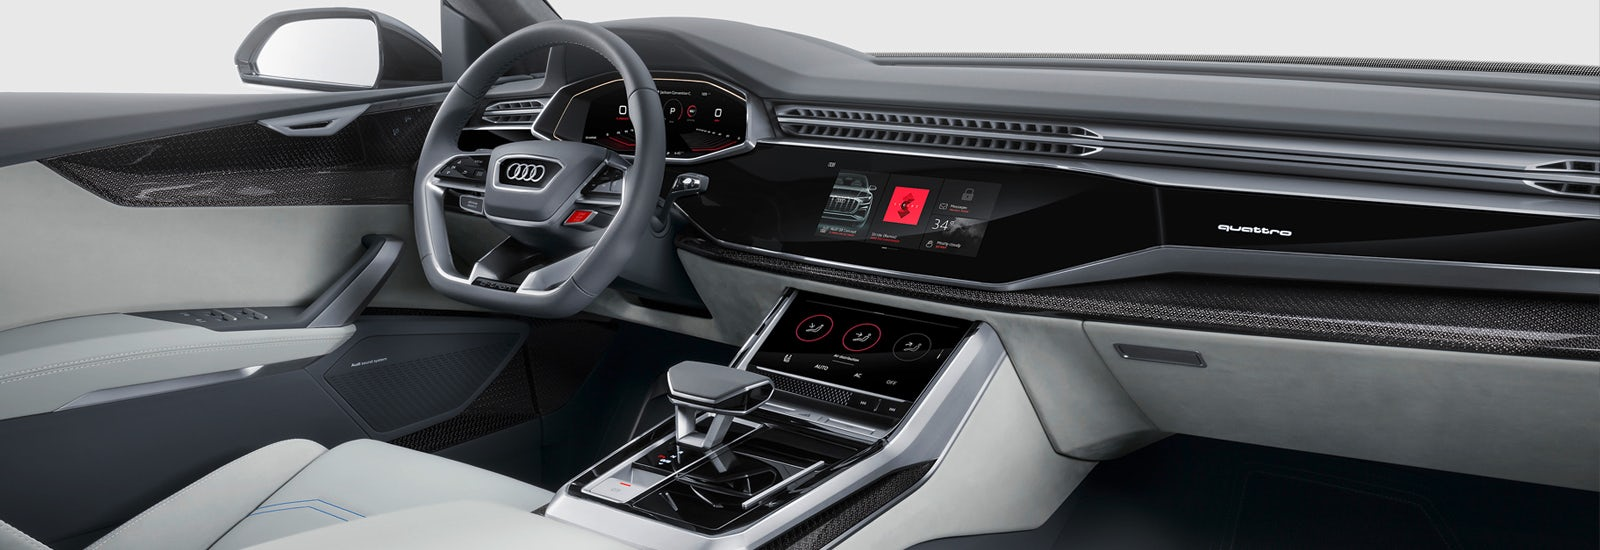 Audi Q Price Specs And Release Date Carwow - Audi cars q8 price list